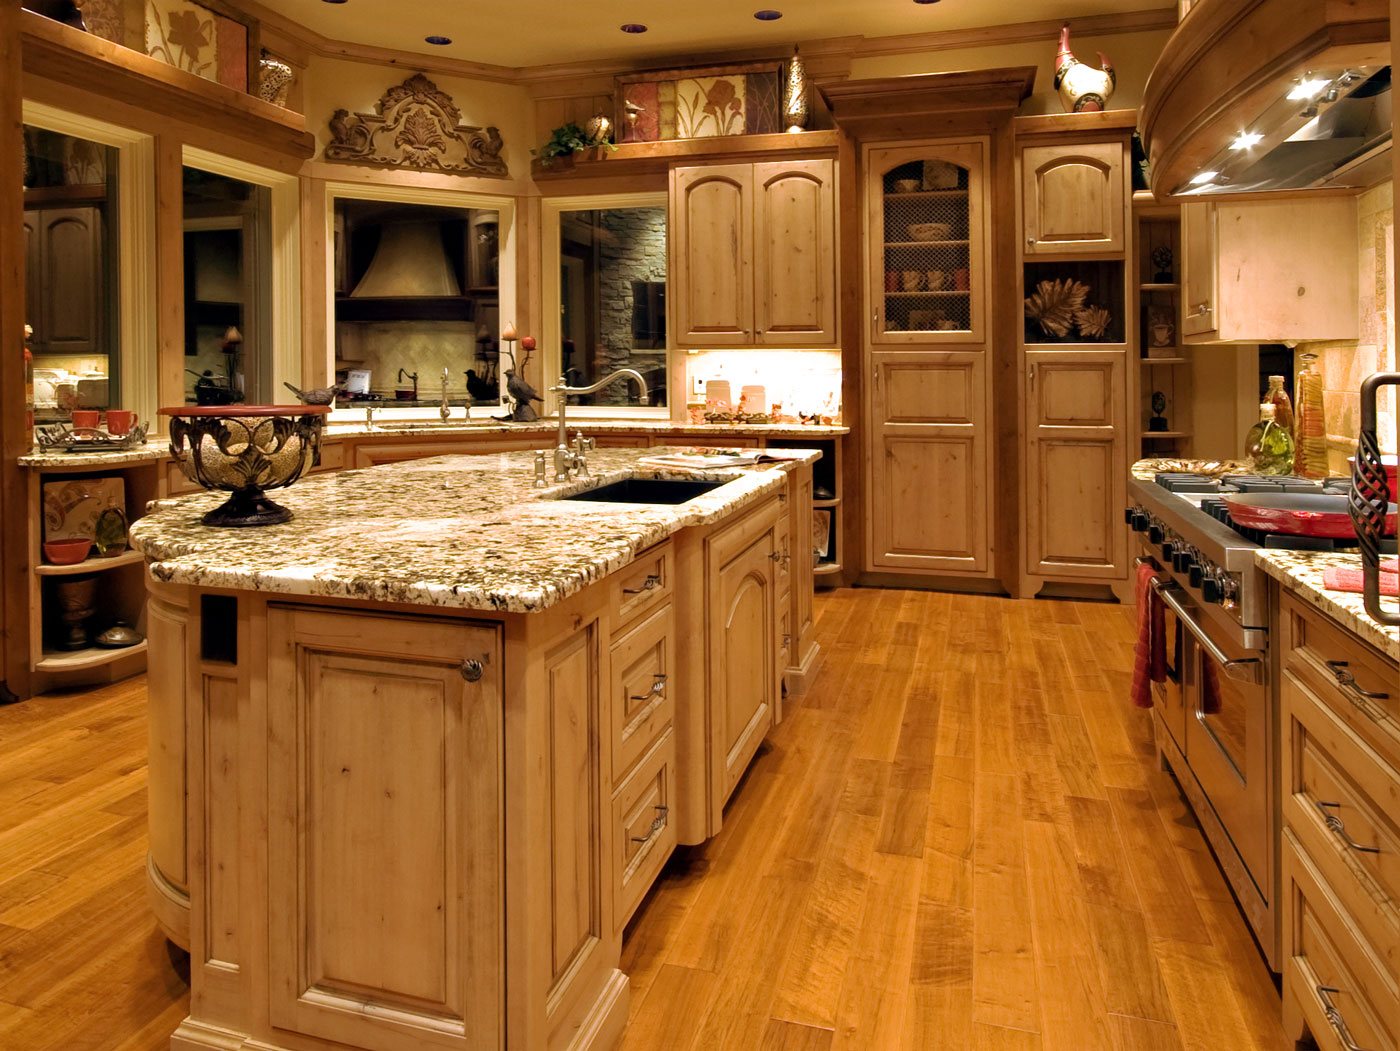 Custom Kitchen Remodel - Fingerlakes NY - Craftworks Custom Cabinetry - Rochester, NY